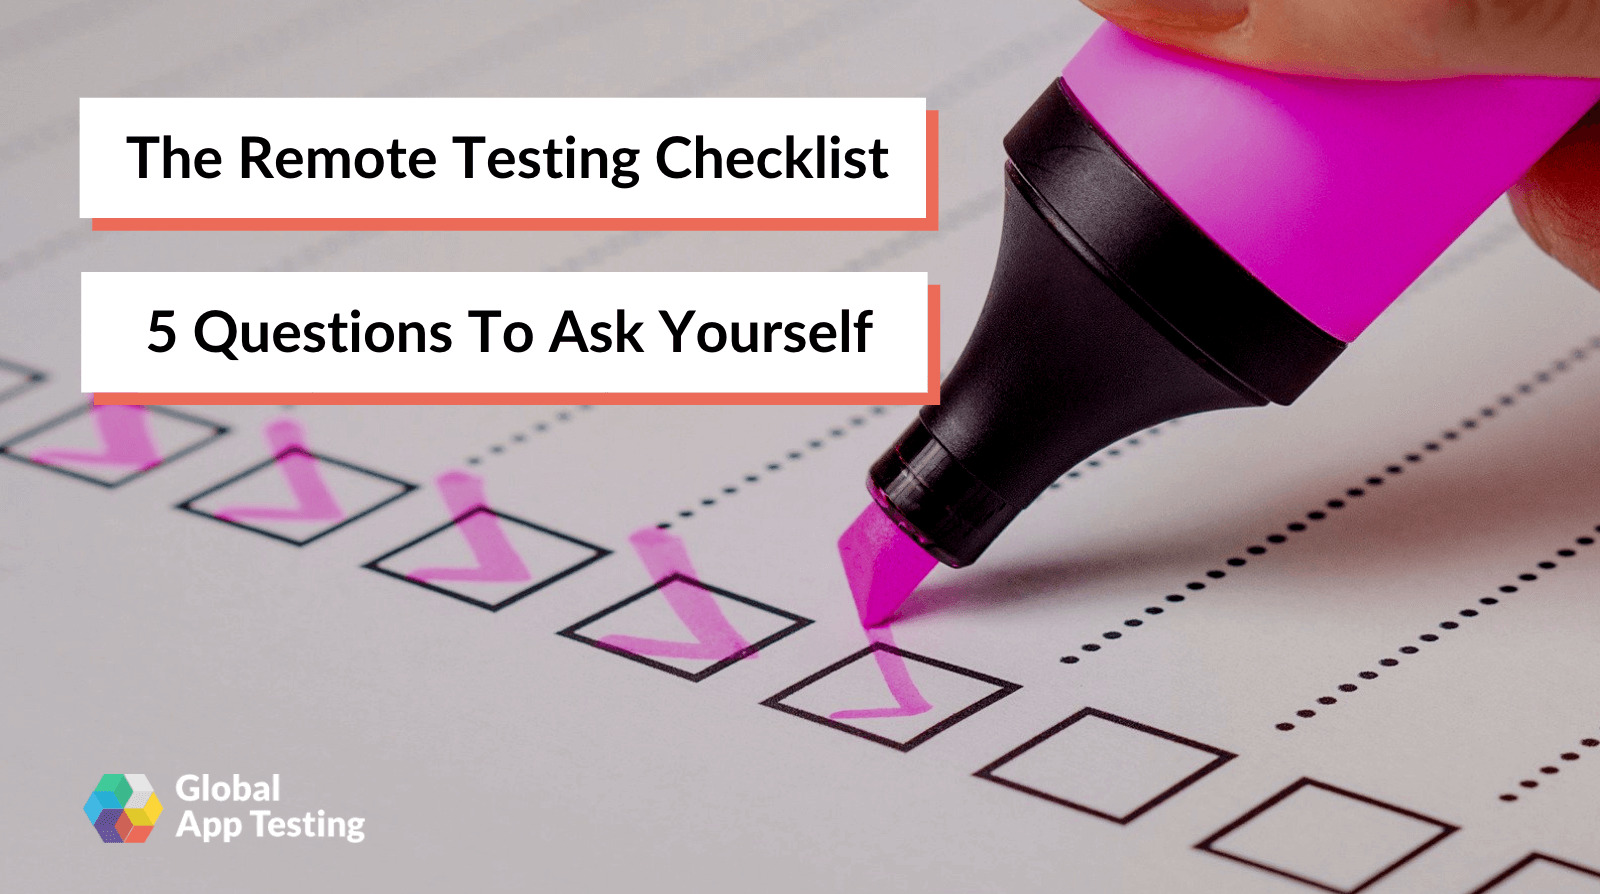 The Remote Testing Checklist: 5 Questions To Ask Yourself